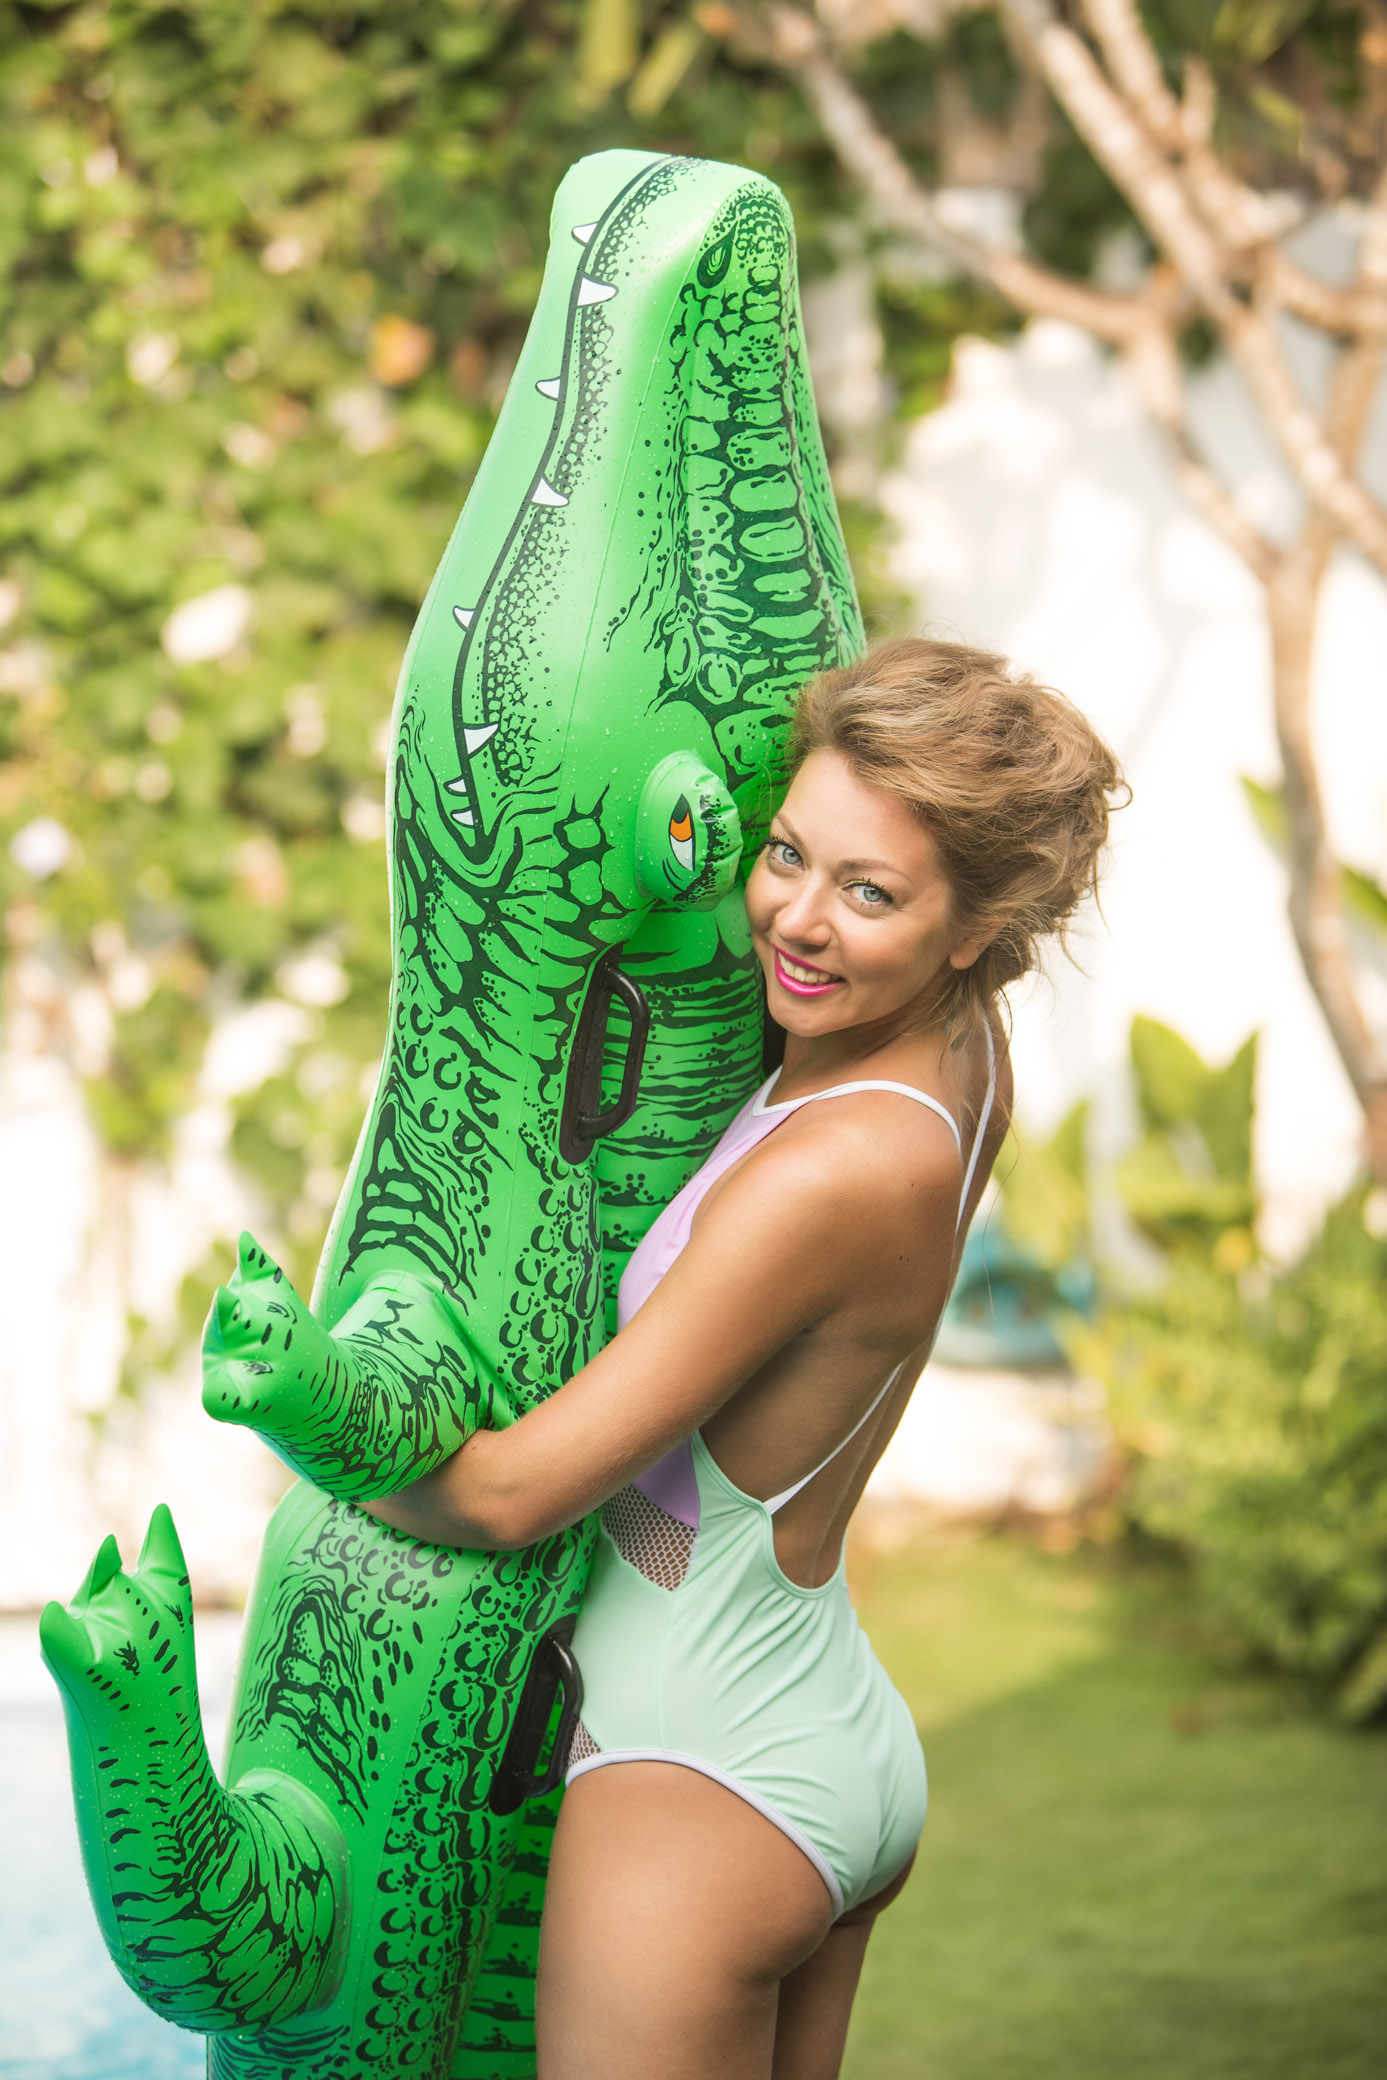 Photoshoot with inflatable crocodile